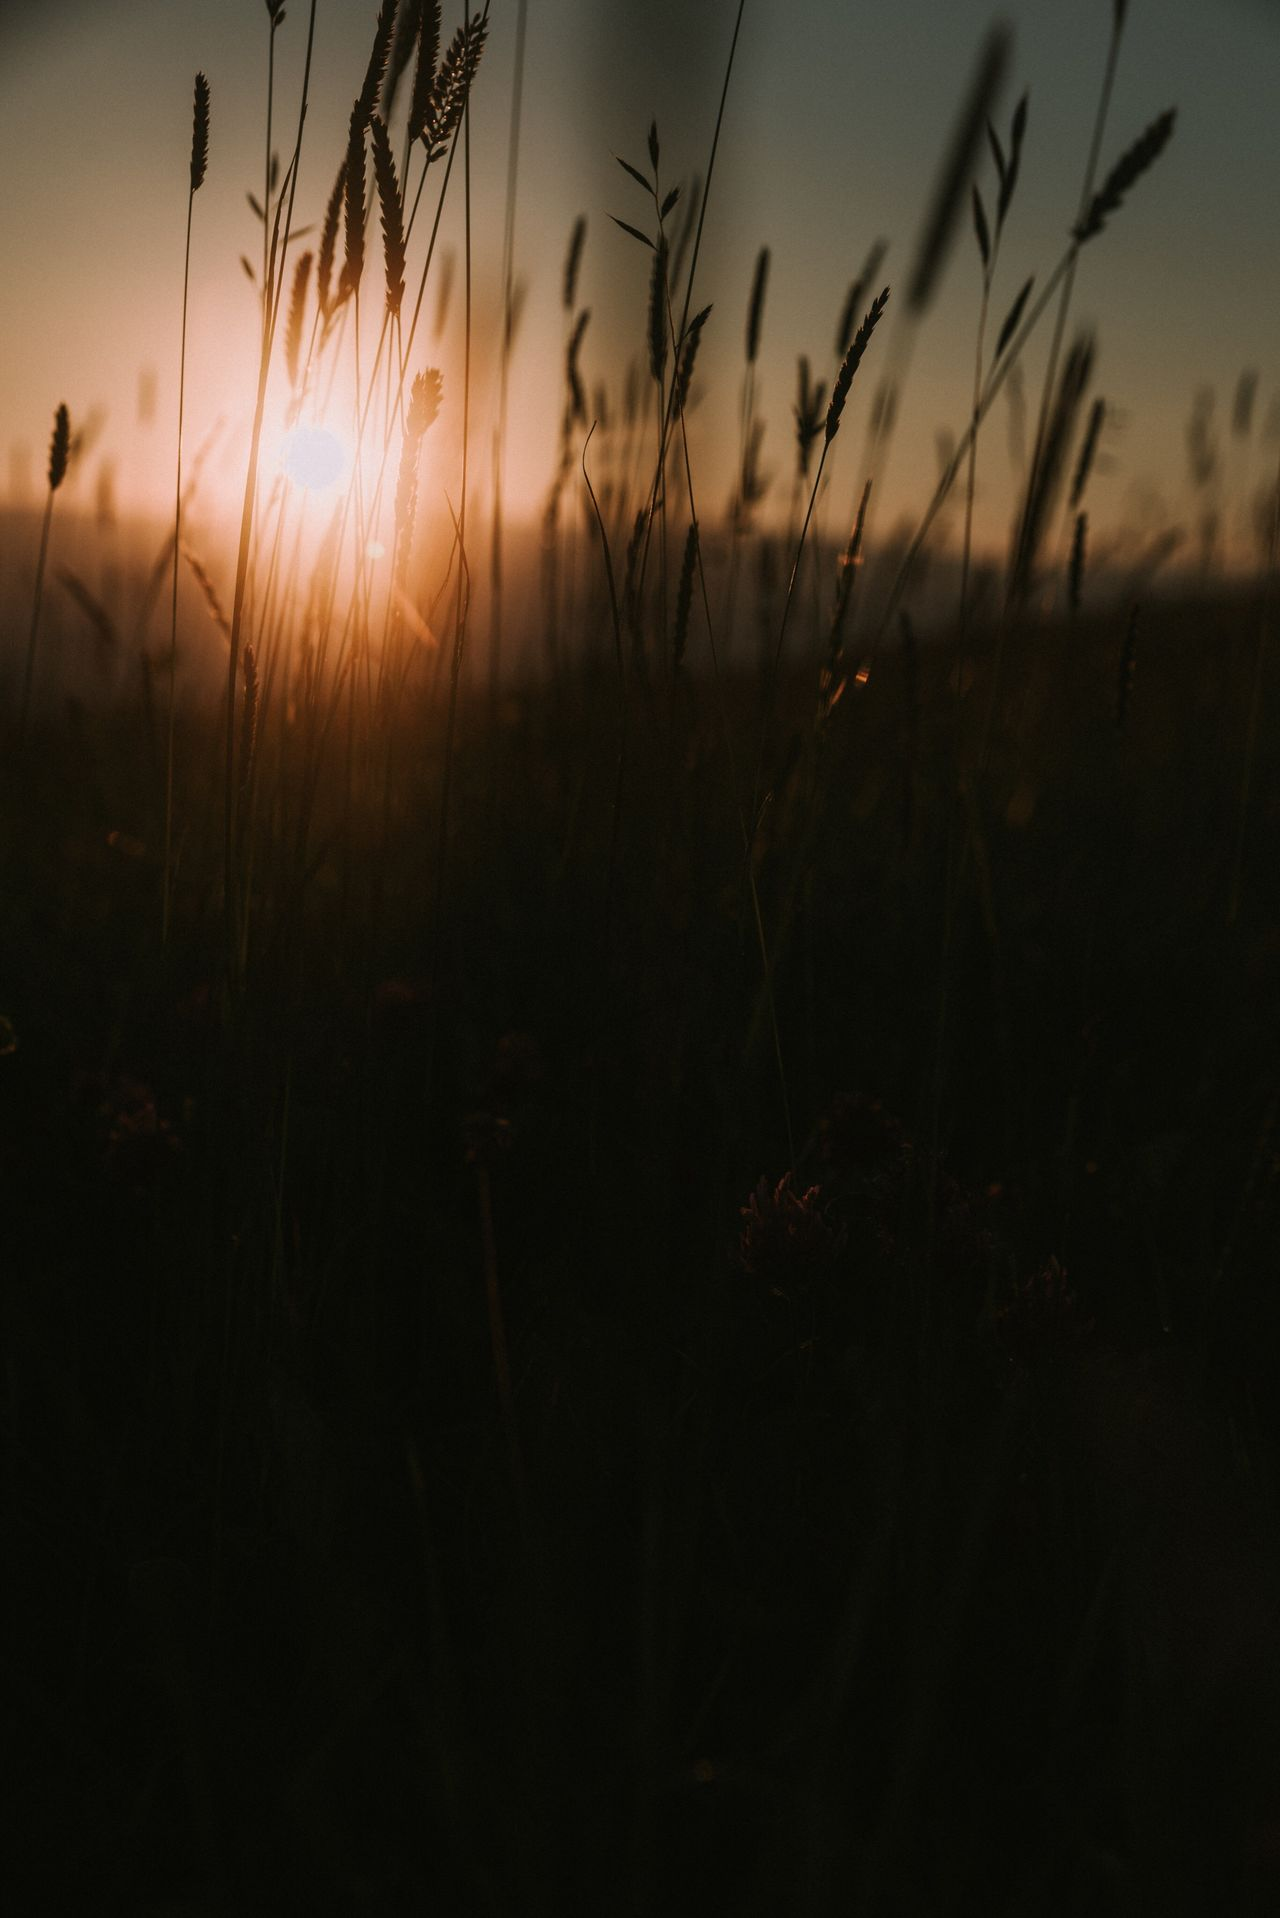 The moment of a magical golden hour Sunset Growth Silhouette Nature Plant Tranquil Scene No People Beauty In Nature Tranquility Outdoors Freshness Nature Flower Collection EyeEm Gallery Summertime EyeEm Nature Lover EyeEm Best Shots Light Up Your Life Golden Hour Outdoor Photography